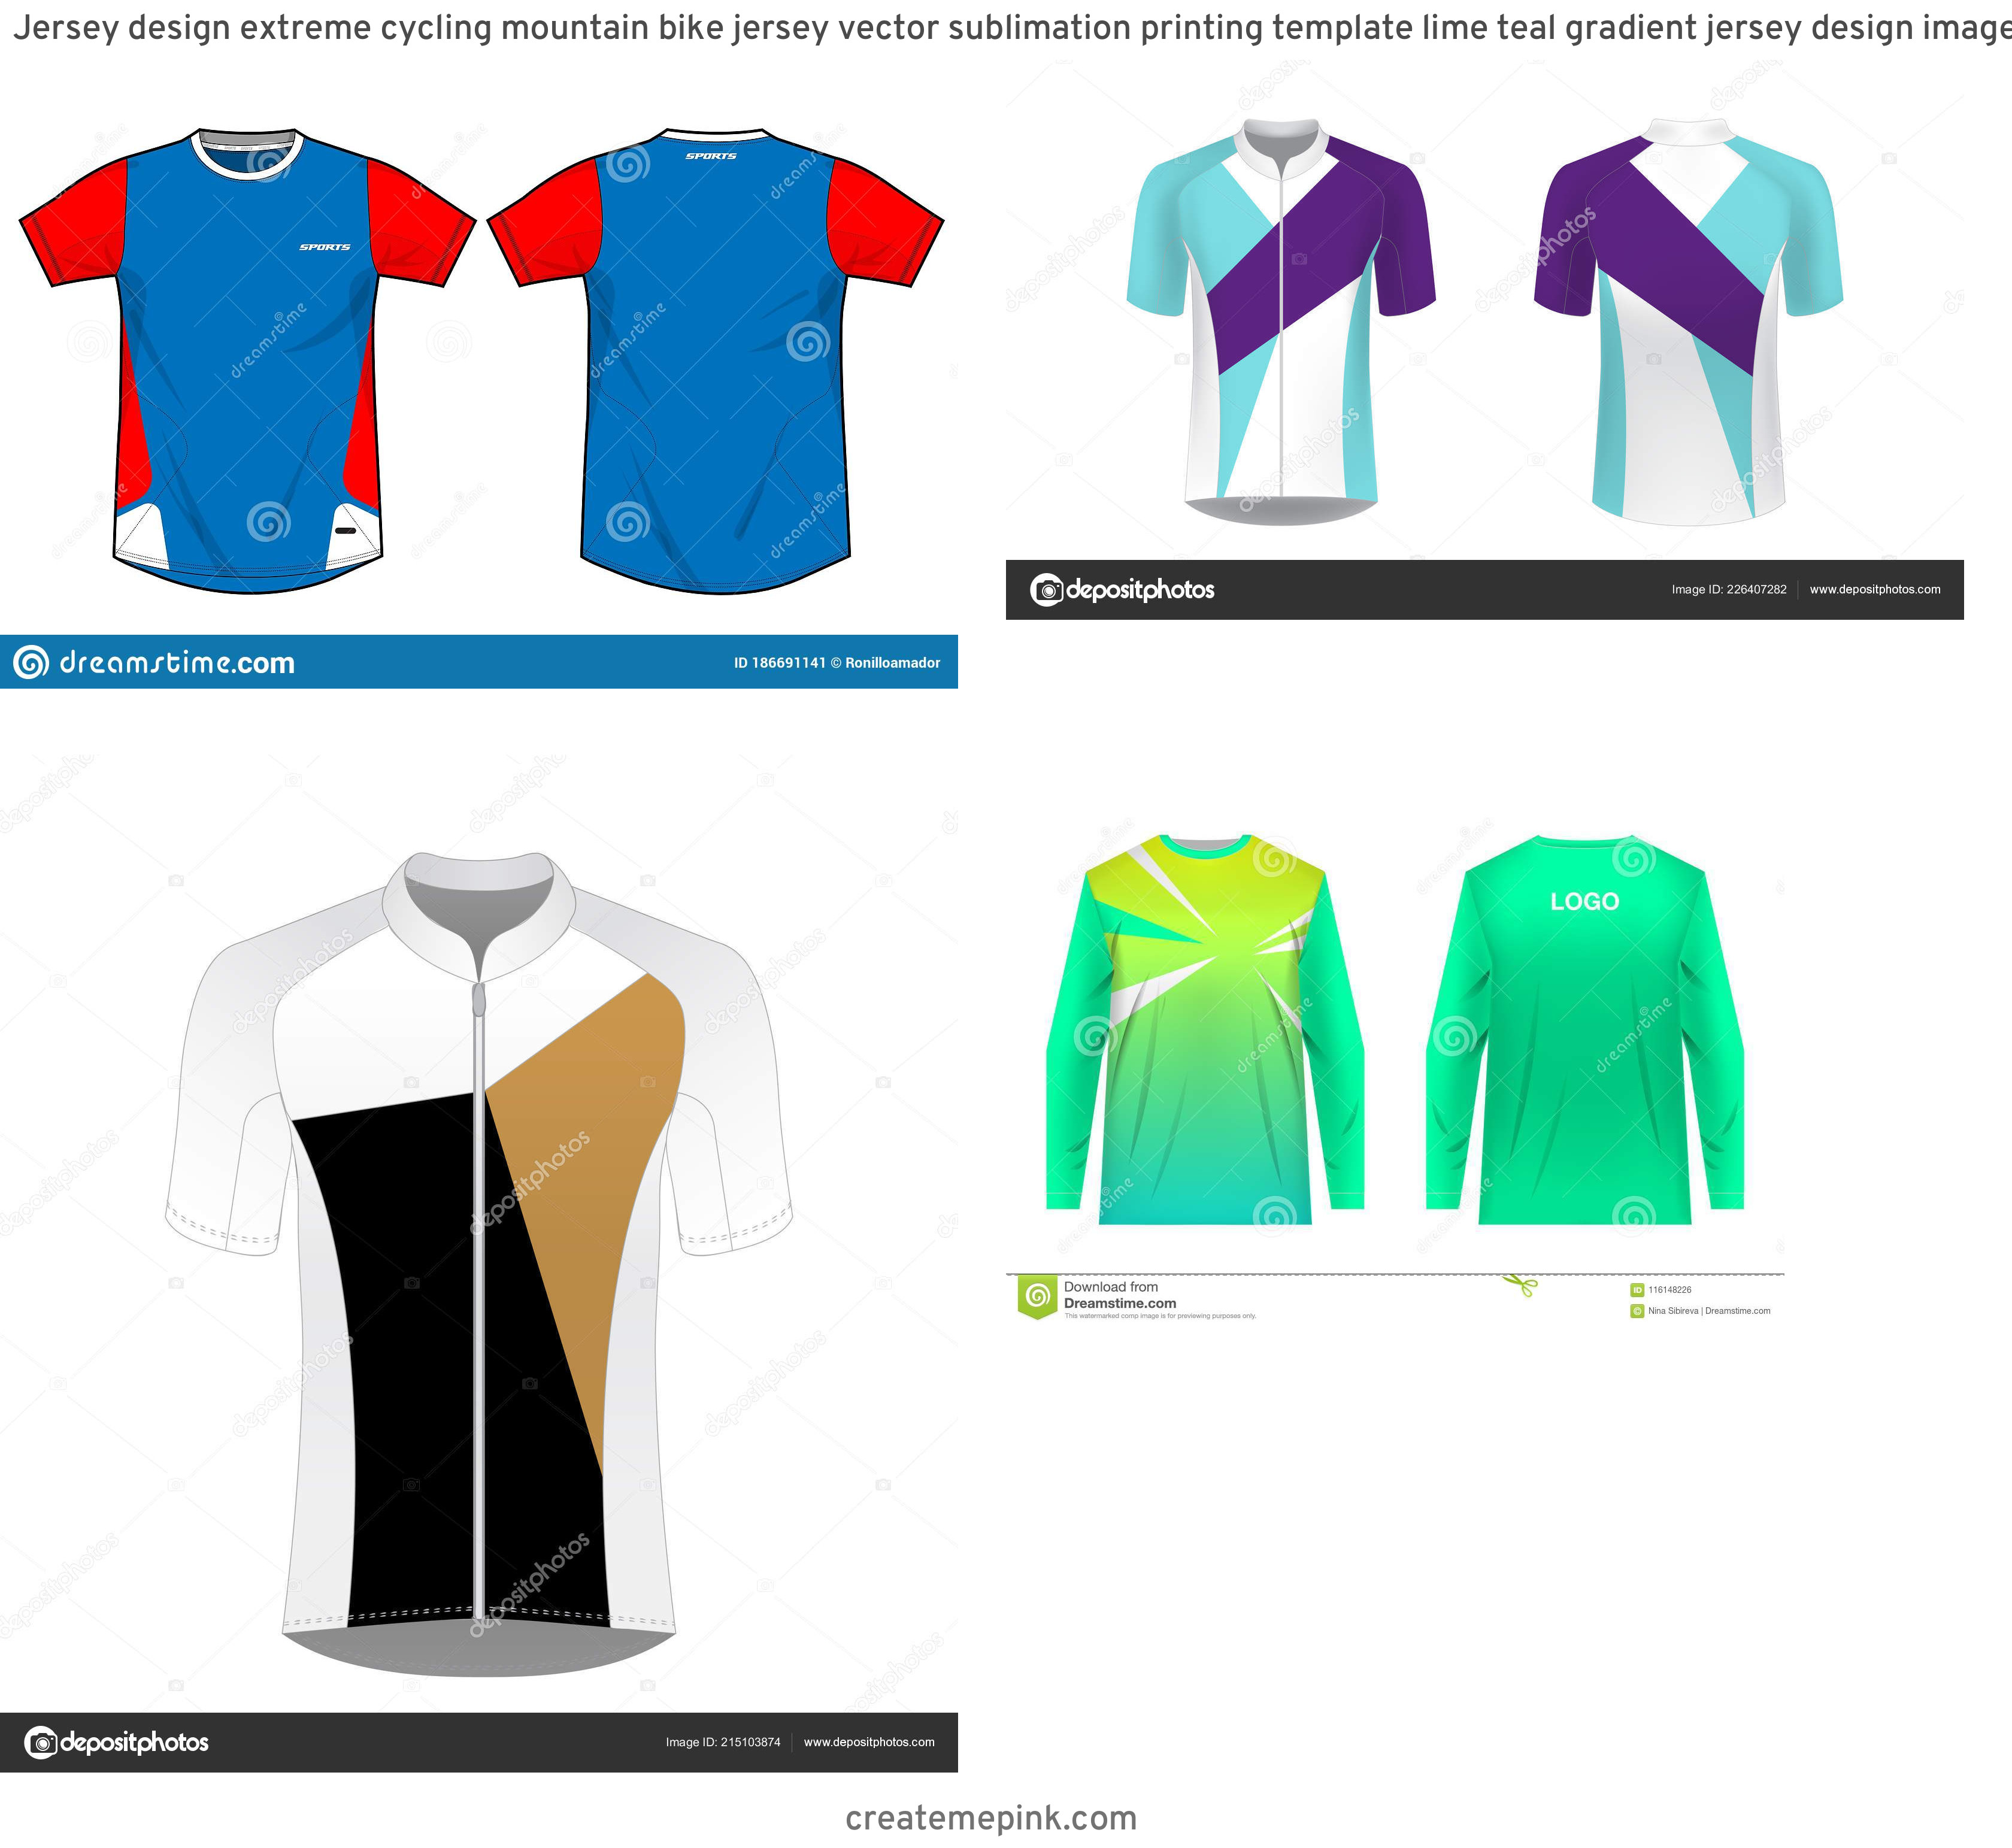 Cycling Kit Template Vector: Jersey Design Extreme Cycling Mountain Bike Jersey Vector Sublimation Printing Template Lime Teal Gradient Jersey Design Image